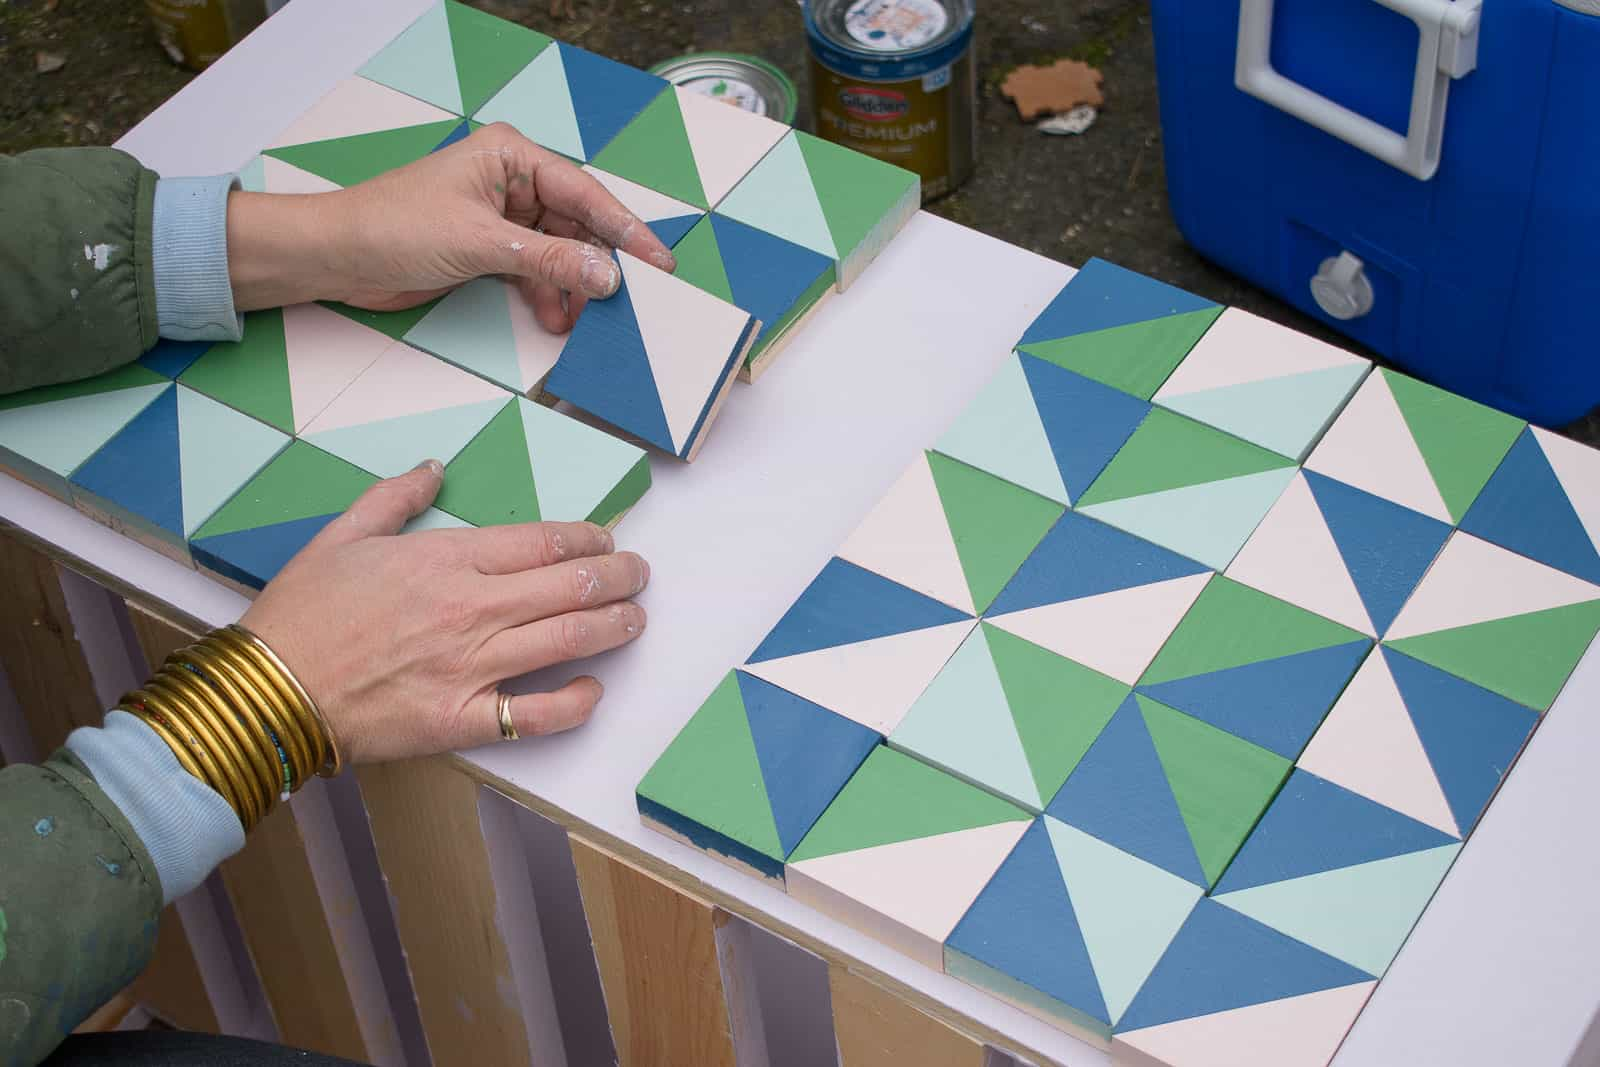 arranging the squares onto the wood box